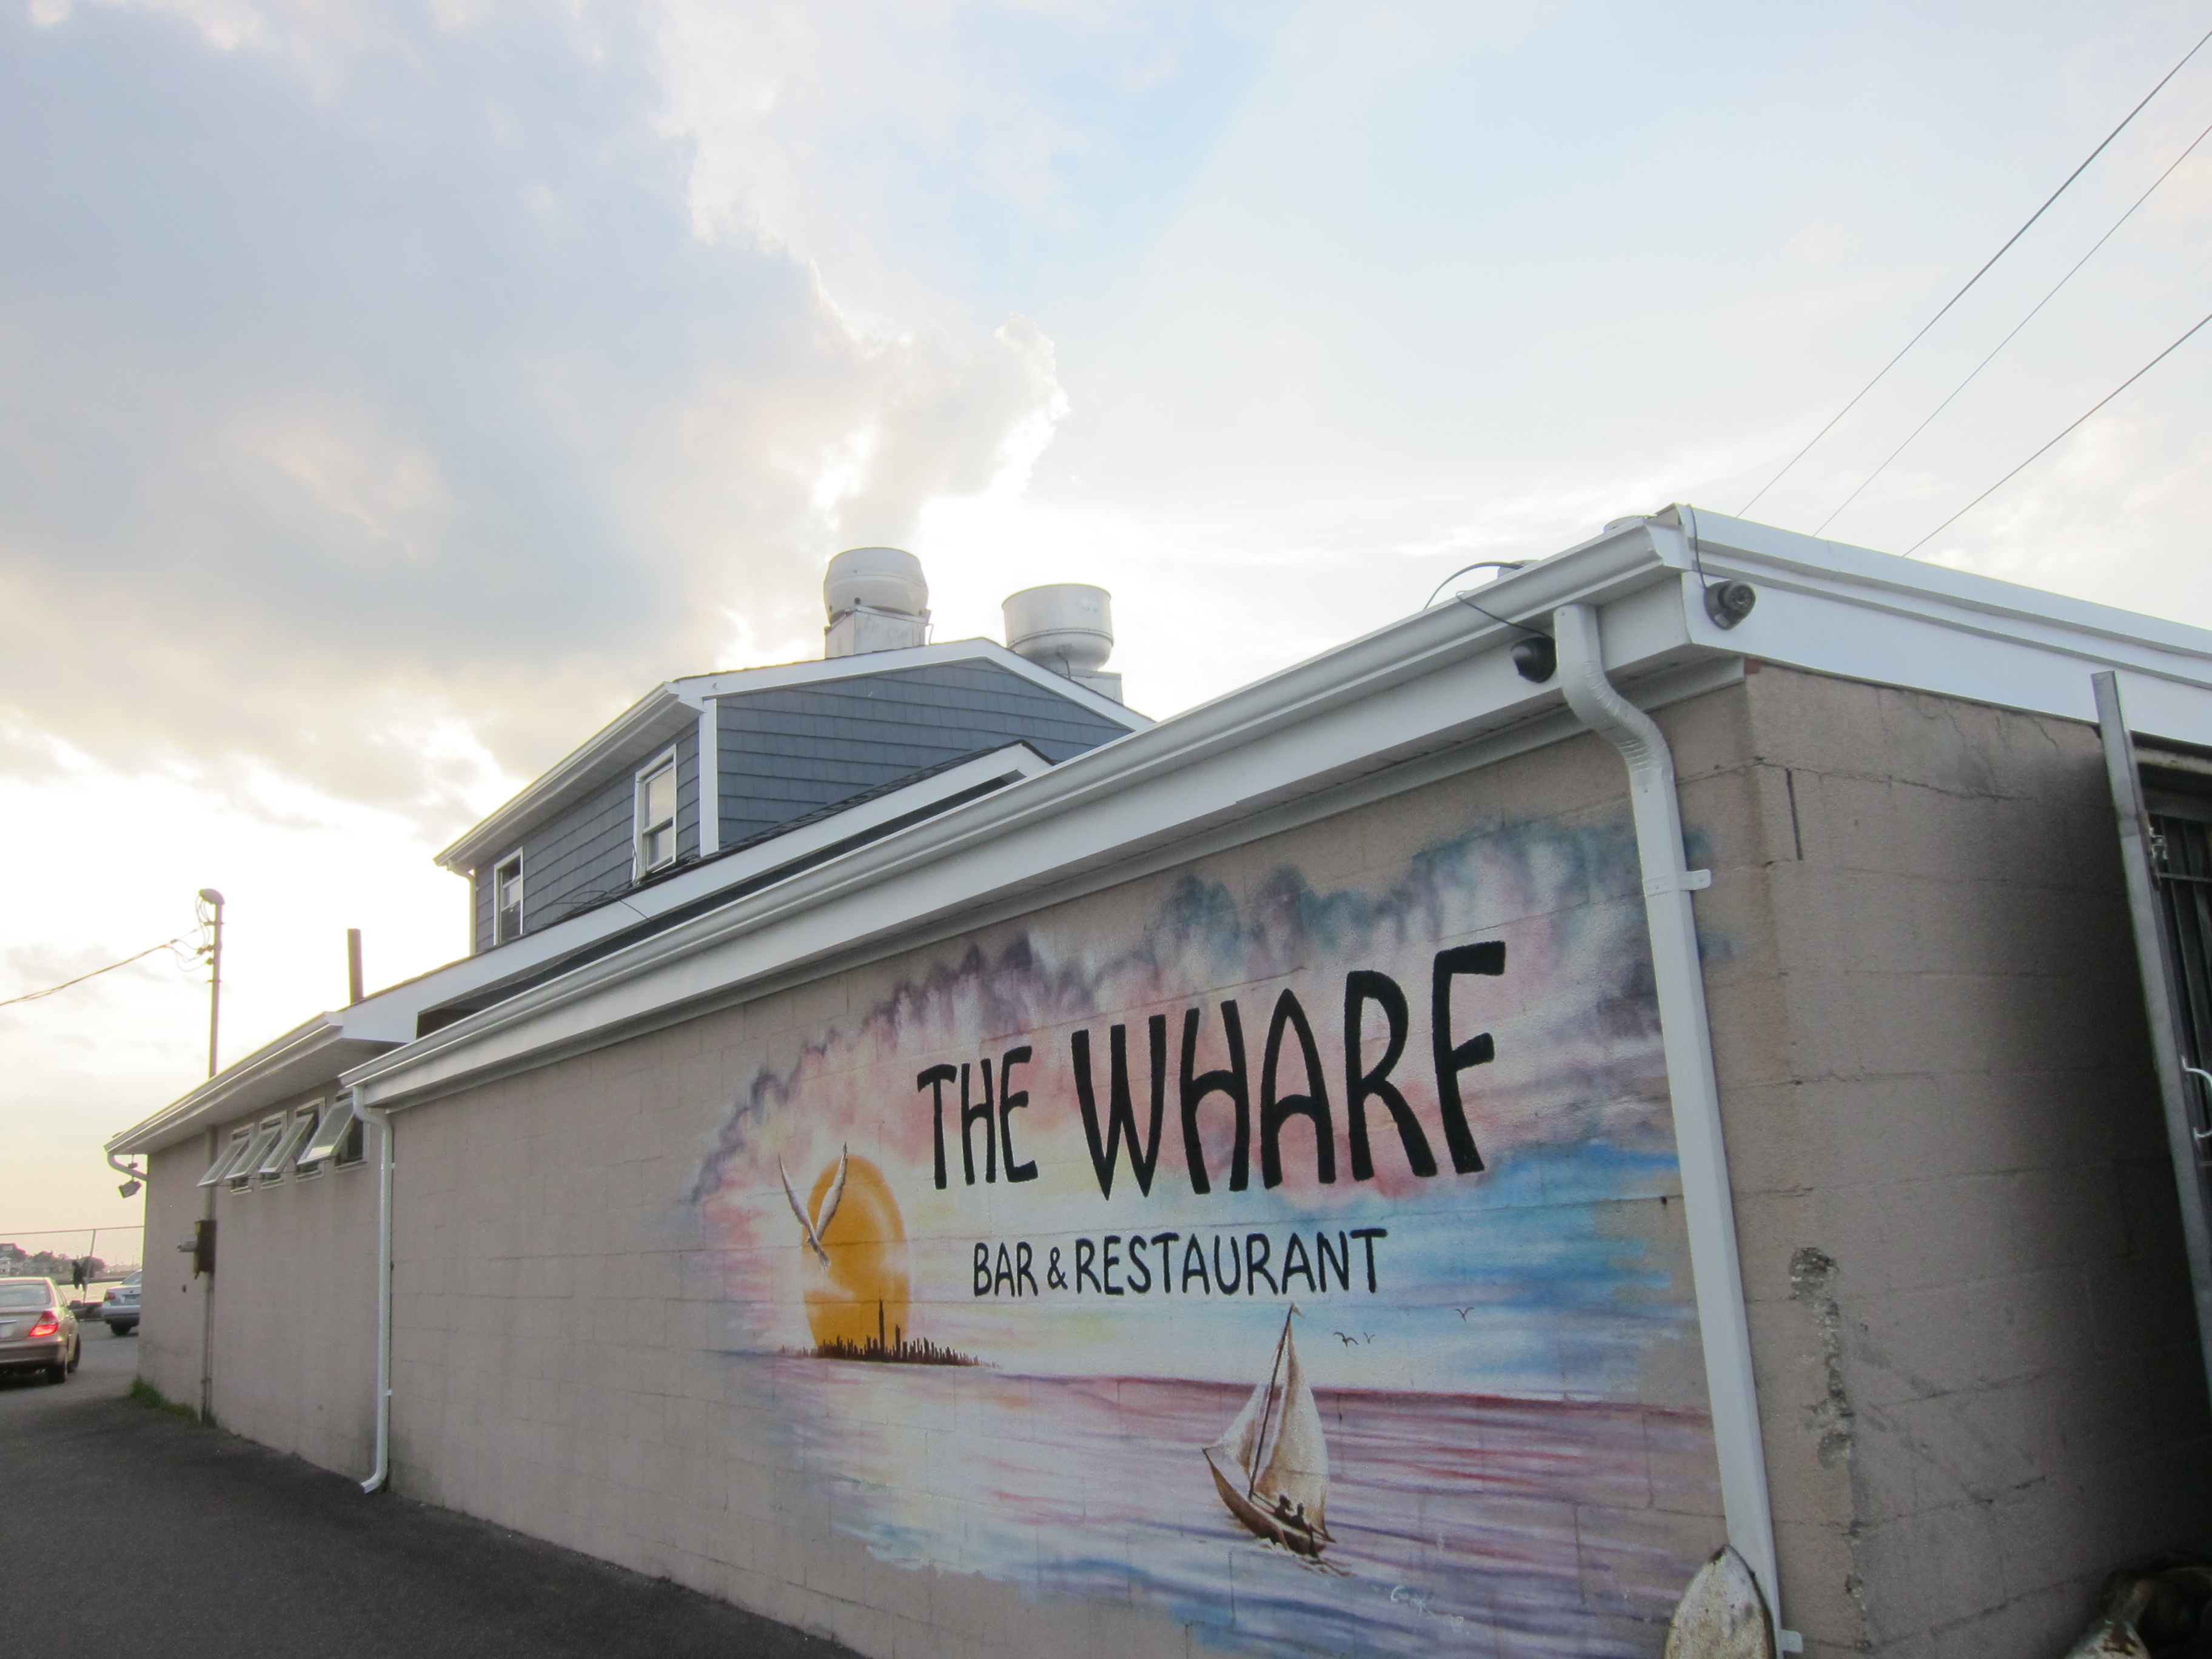 Now If You Re Going To Try The Wharf For Dinner I Suggest Getting There As Early Can From 6 P M On Inch Closer Sunset Place Gets